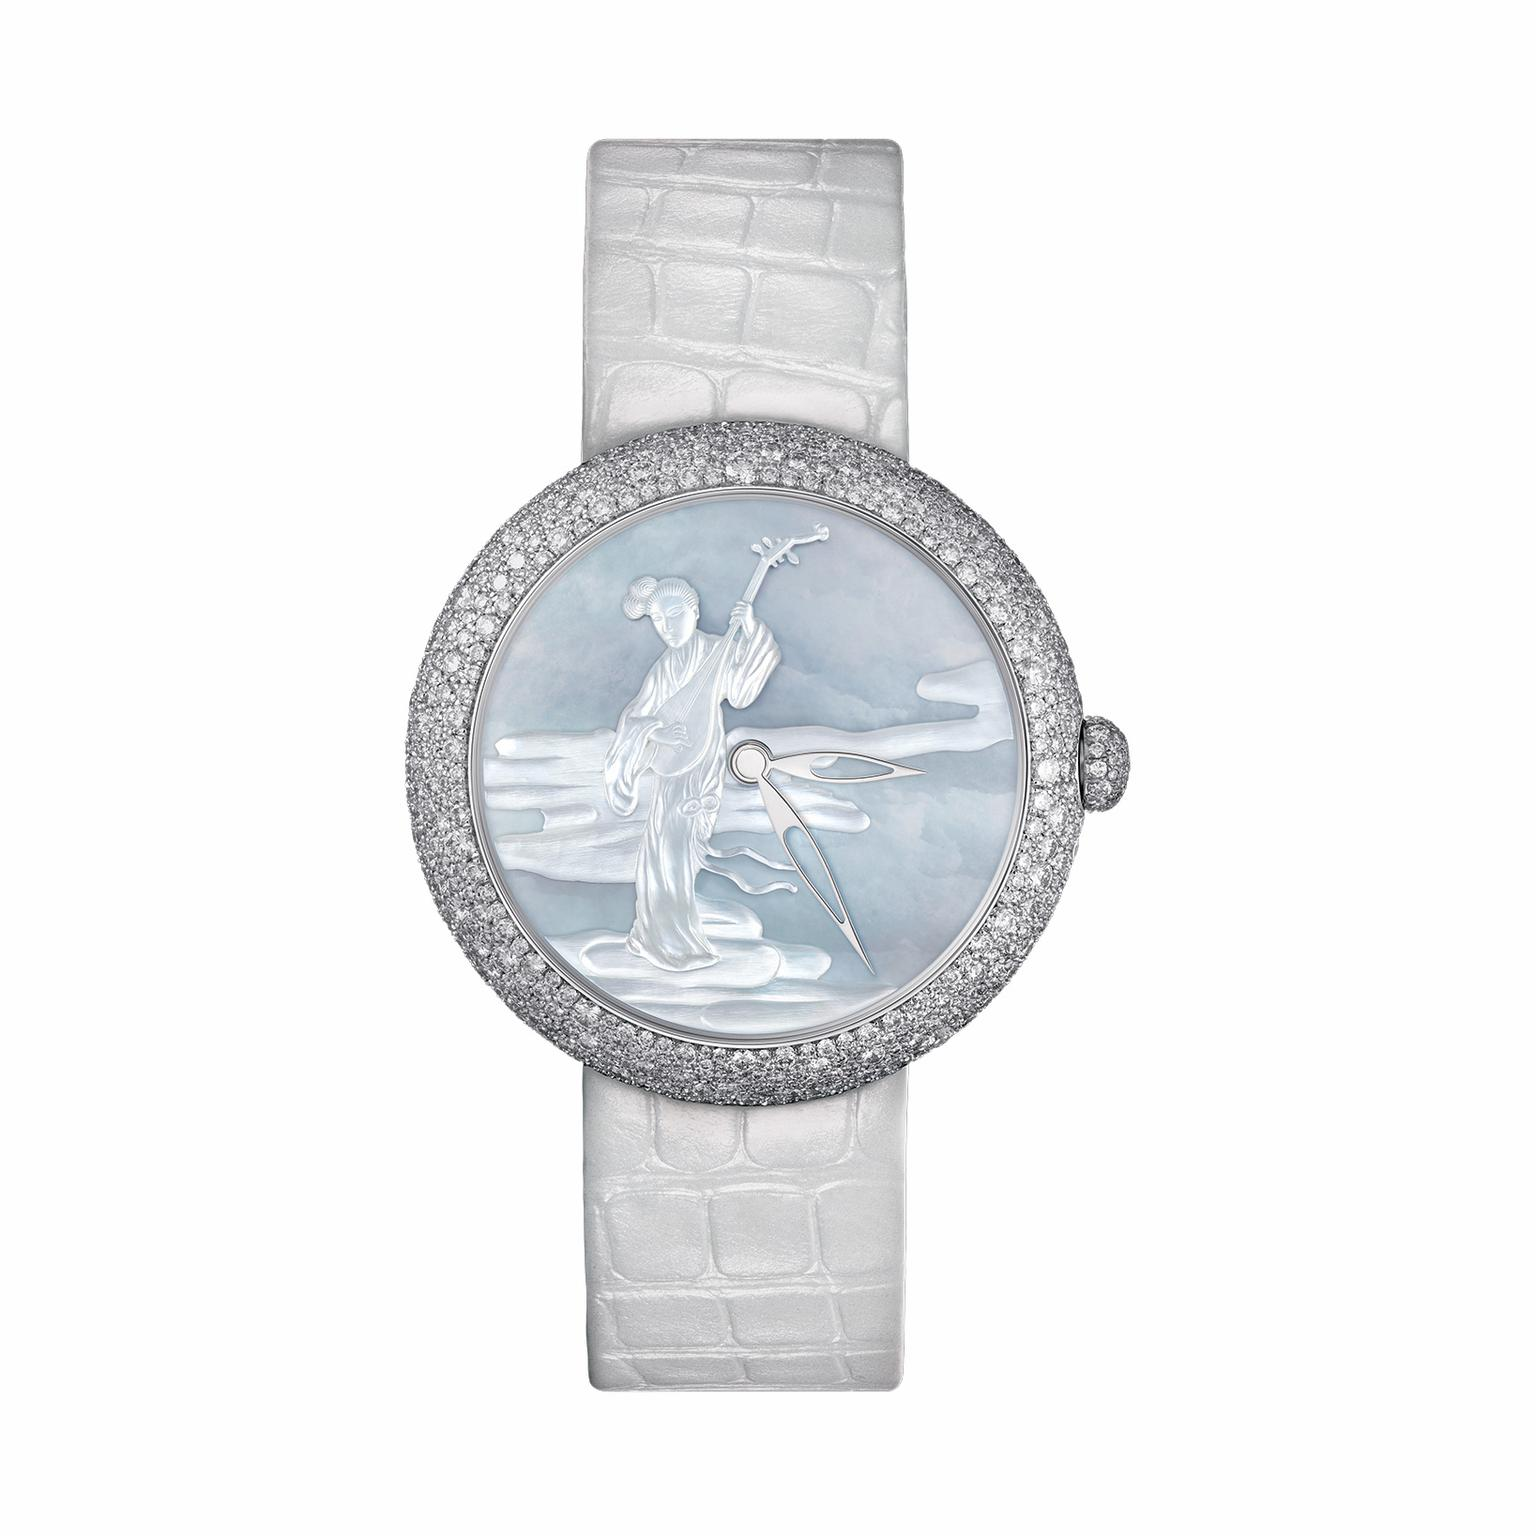 Chanel Decor Coromandel Musicienne diamond ladies' watch